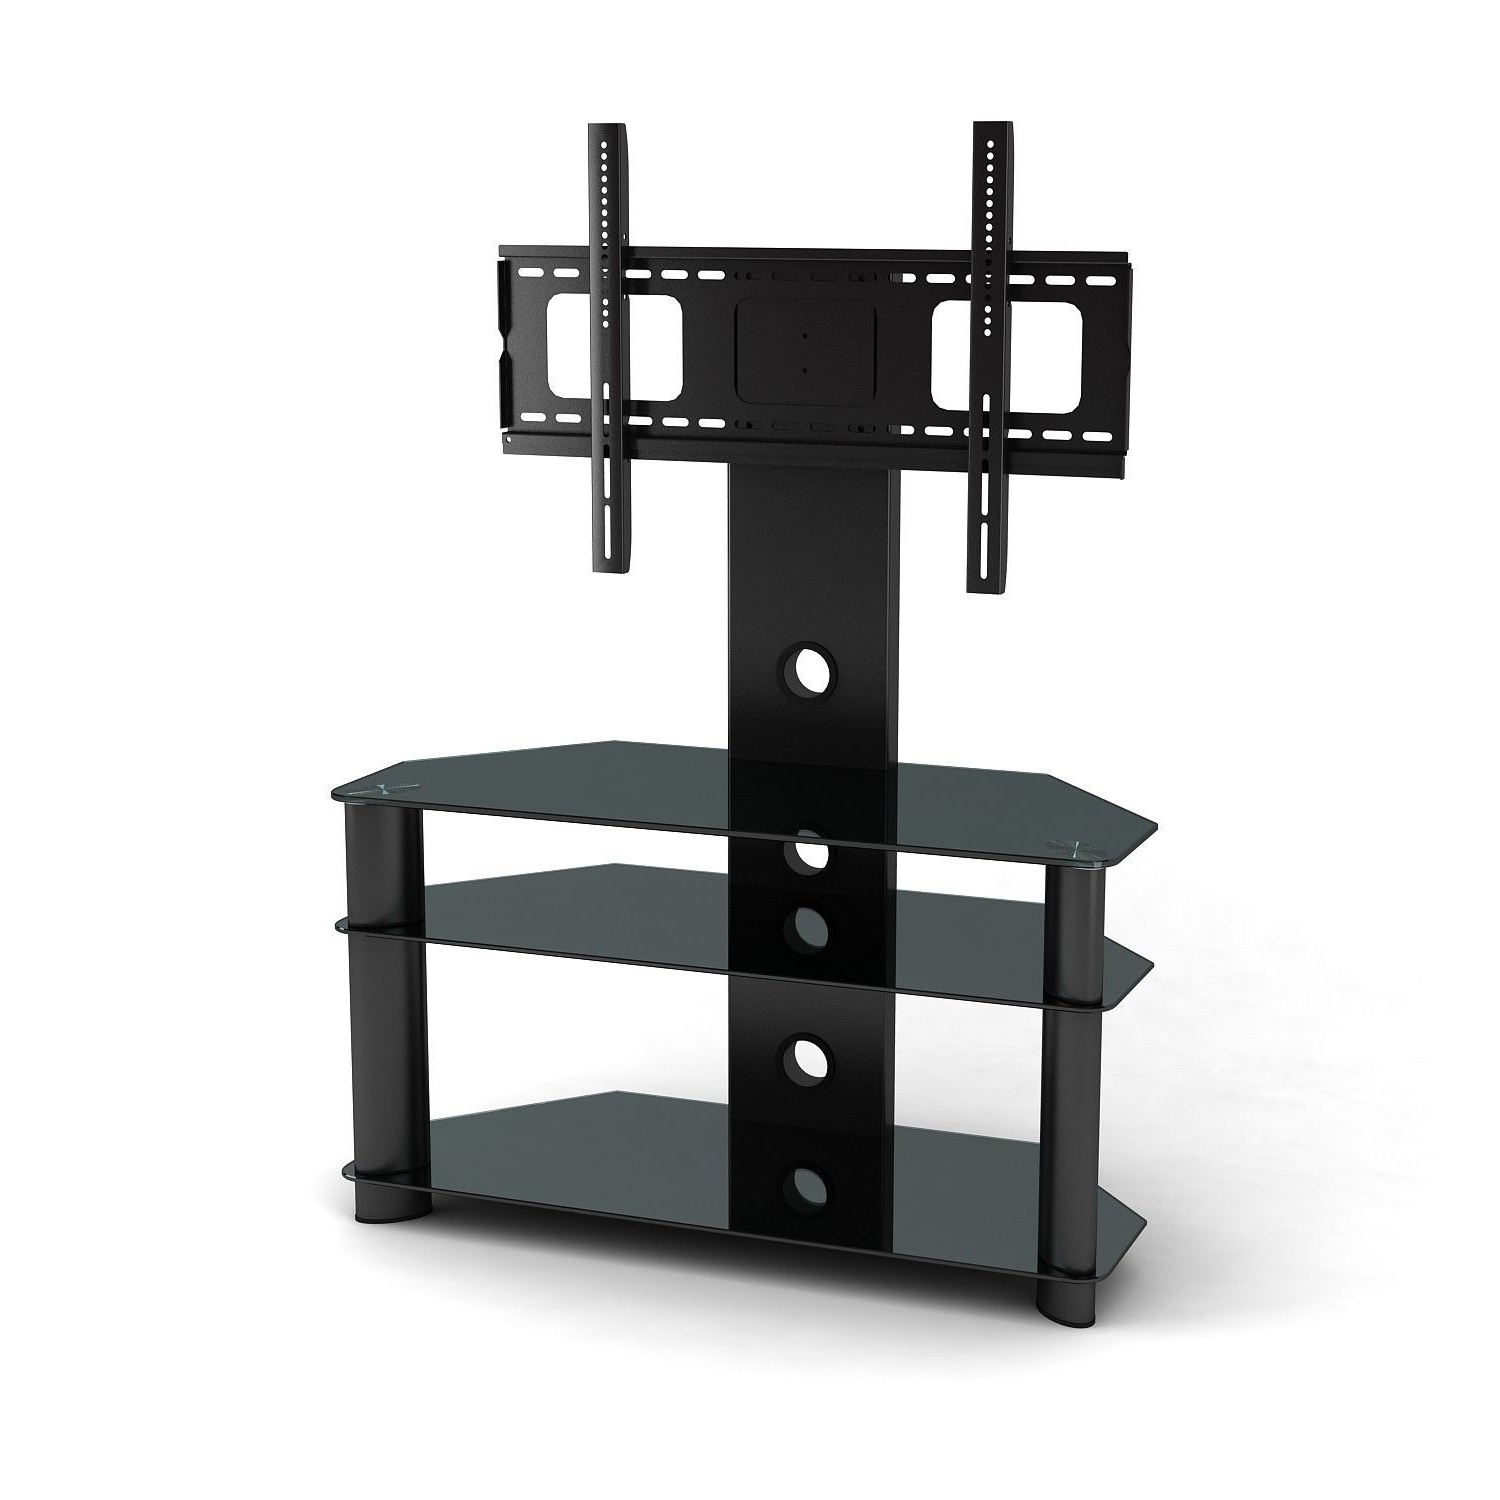 Fashionable Tabletop Tv Stands For Tabletop Tv Stand Best Buy Universal 60 Inch Floor Diy Adjustable (View 18 of 20)